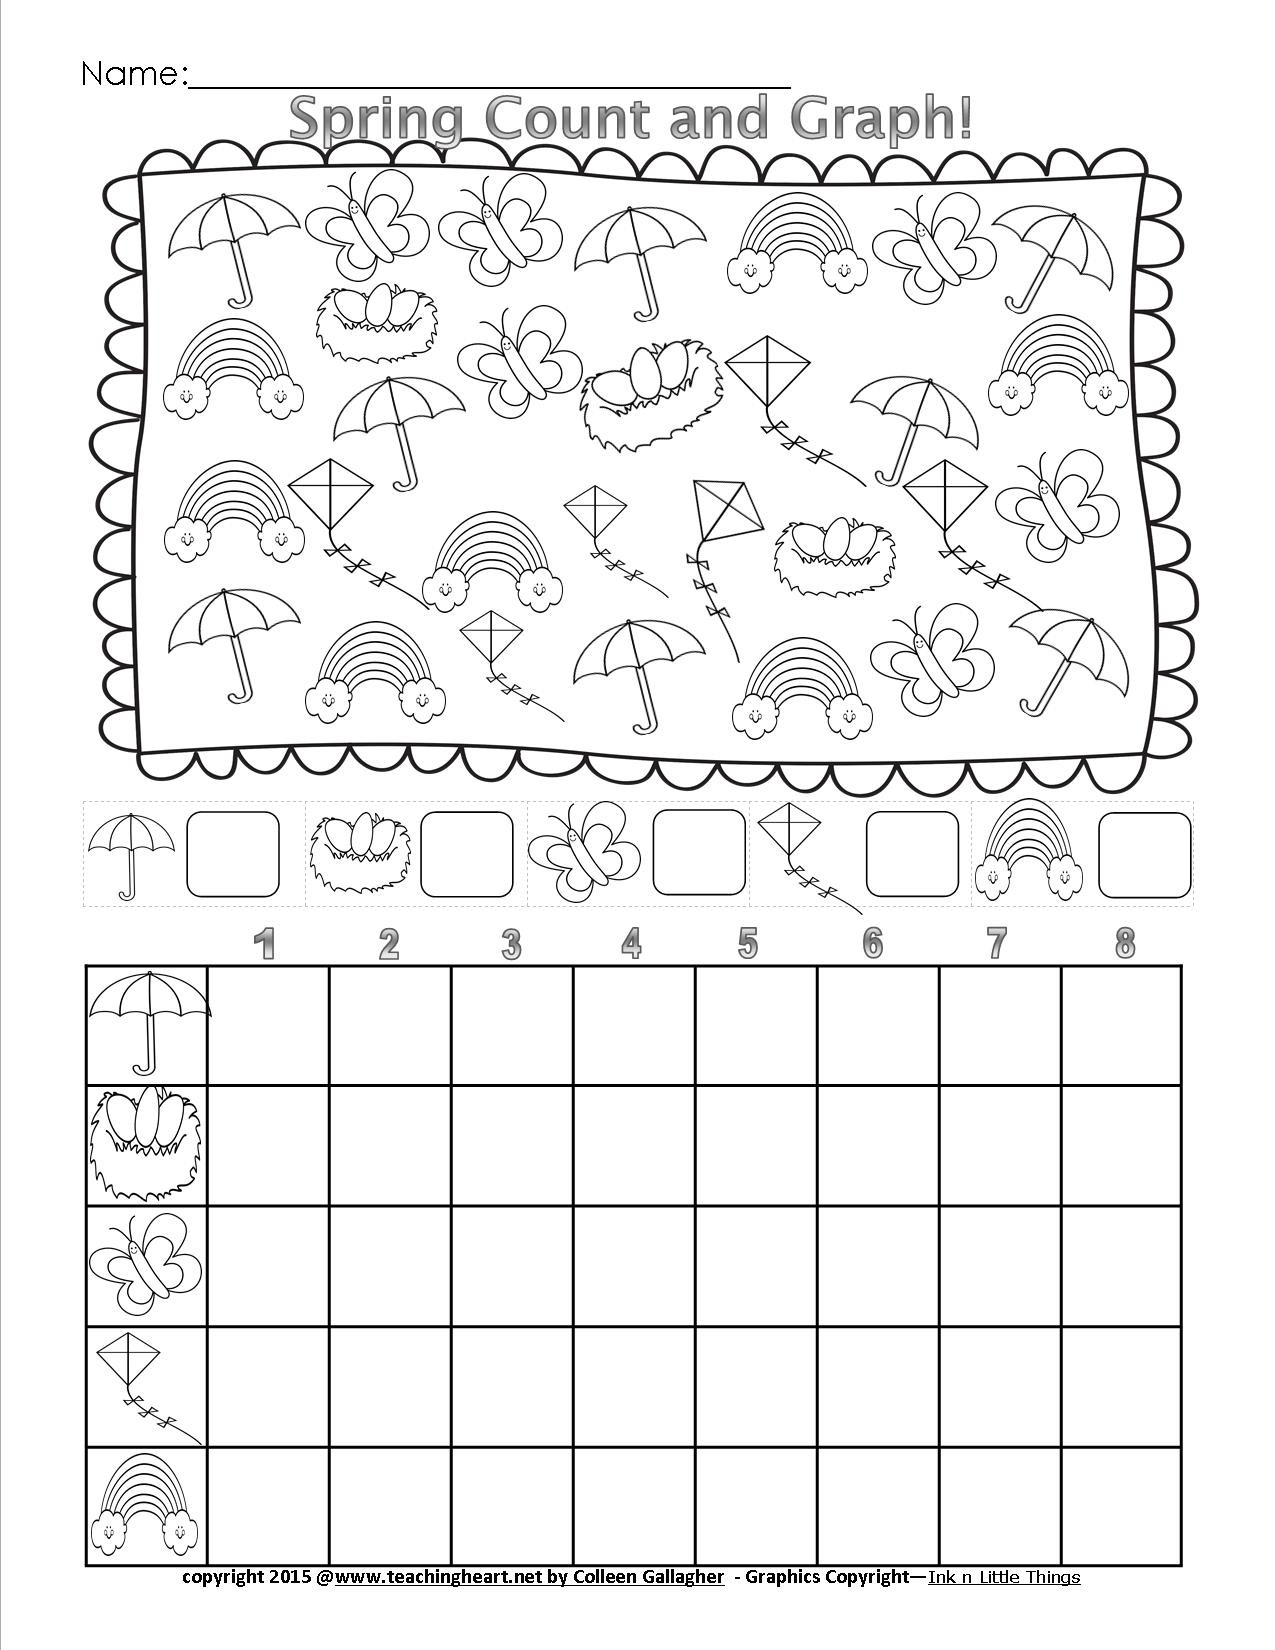 Sorting Worksheets for First Grade Spring Count and Graph Free Teaching Heart Blog Graphing